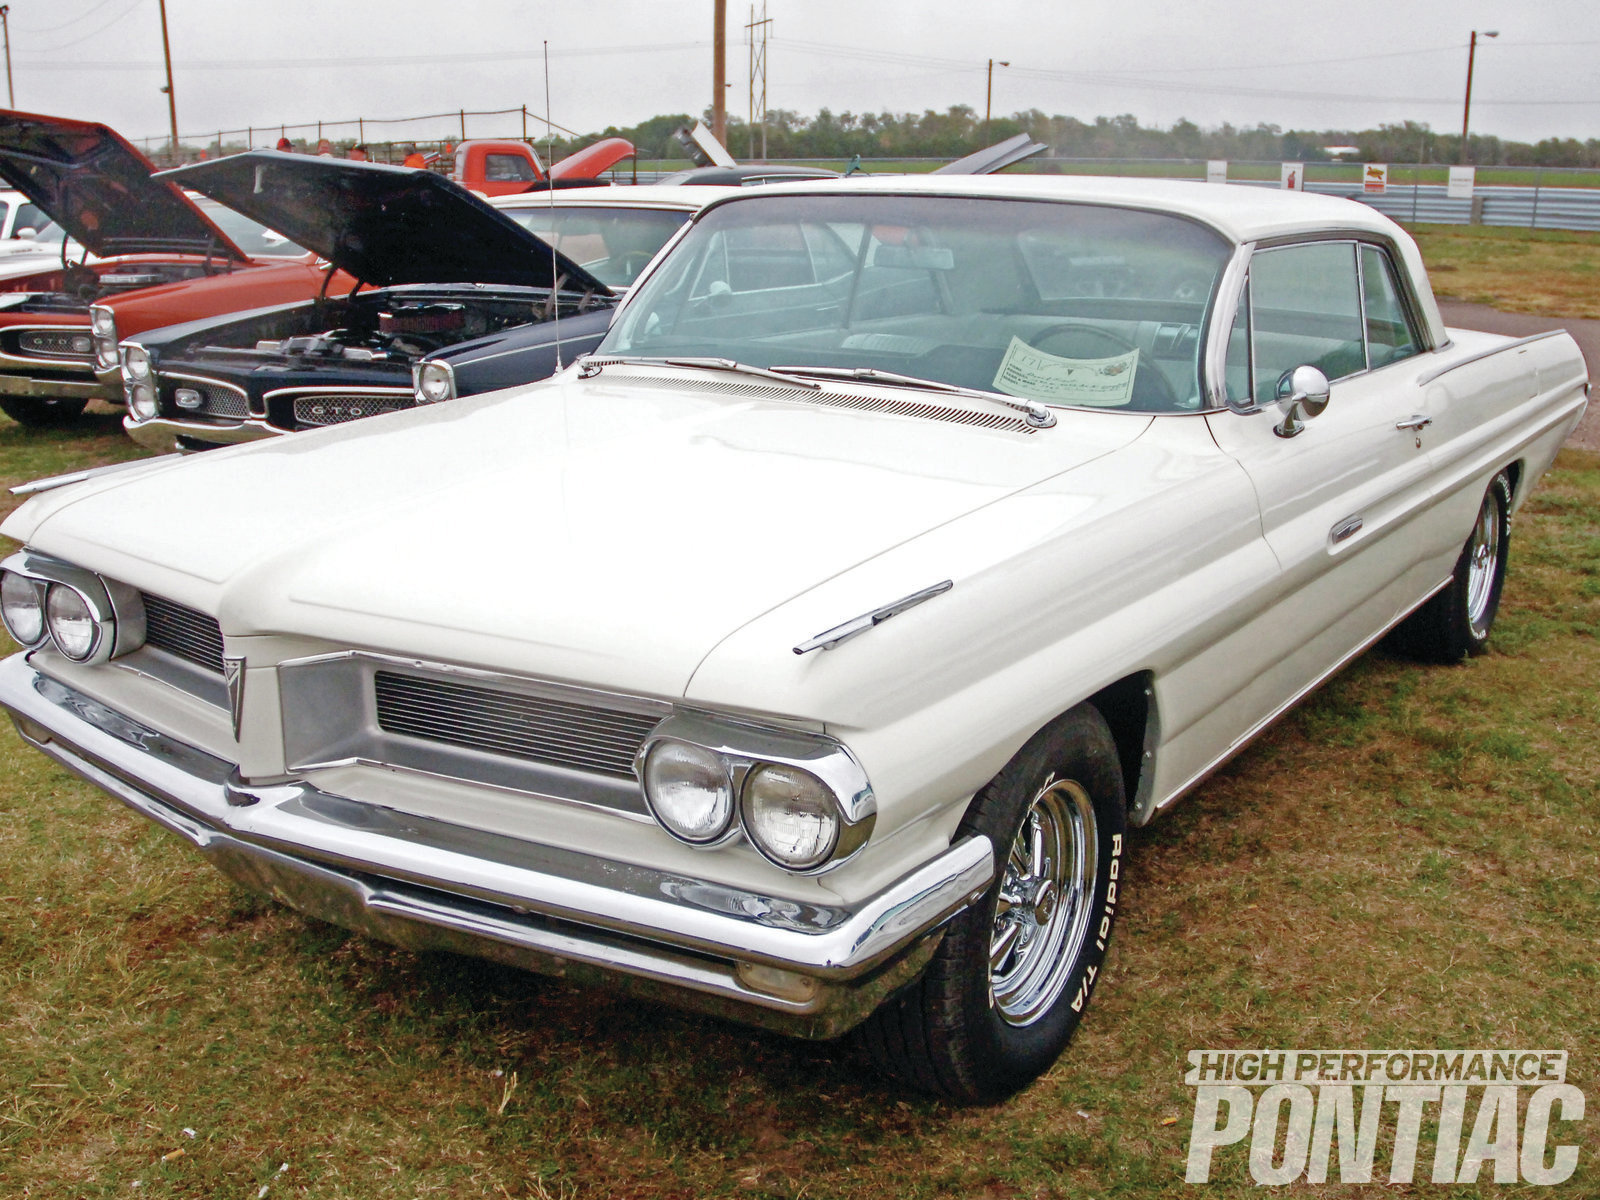 1964 Pontiac Grand Prix Pontiac Design Analysis